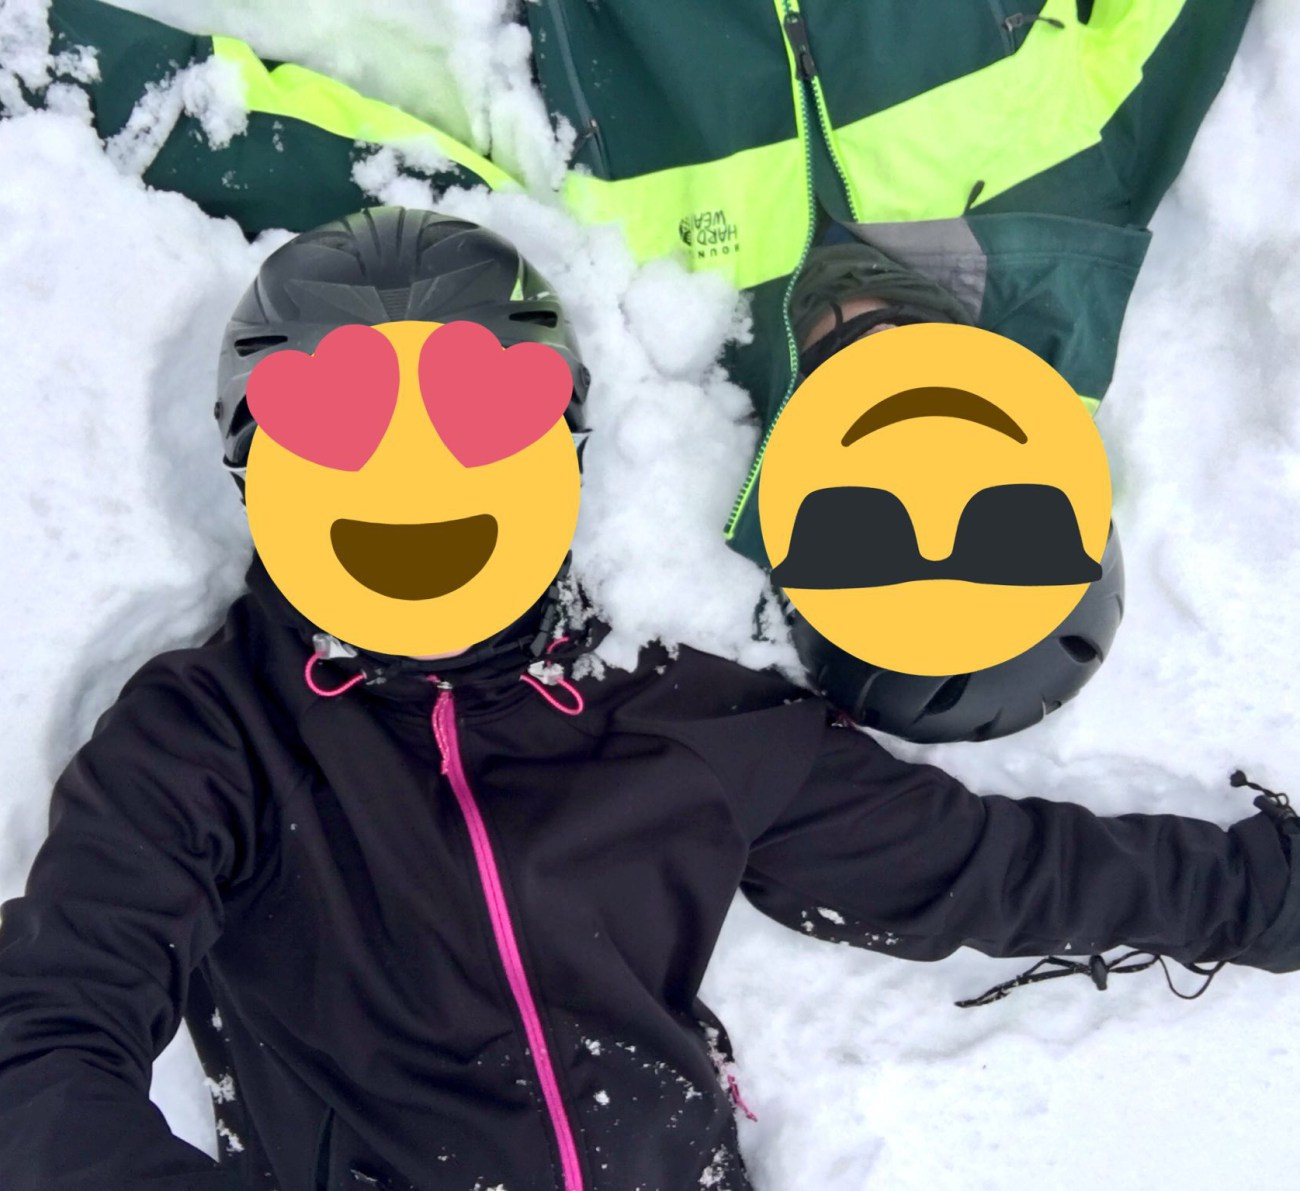 Mr and Ms ONL in deep snow